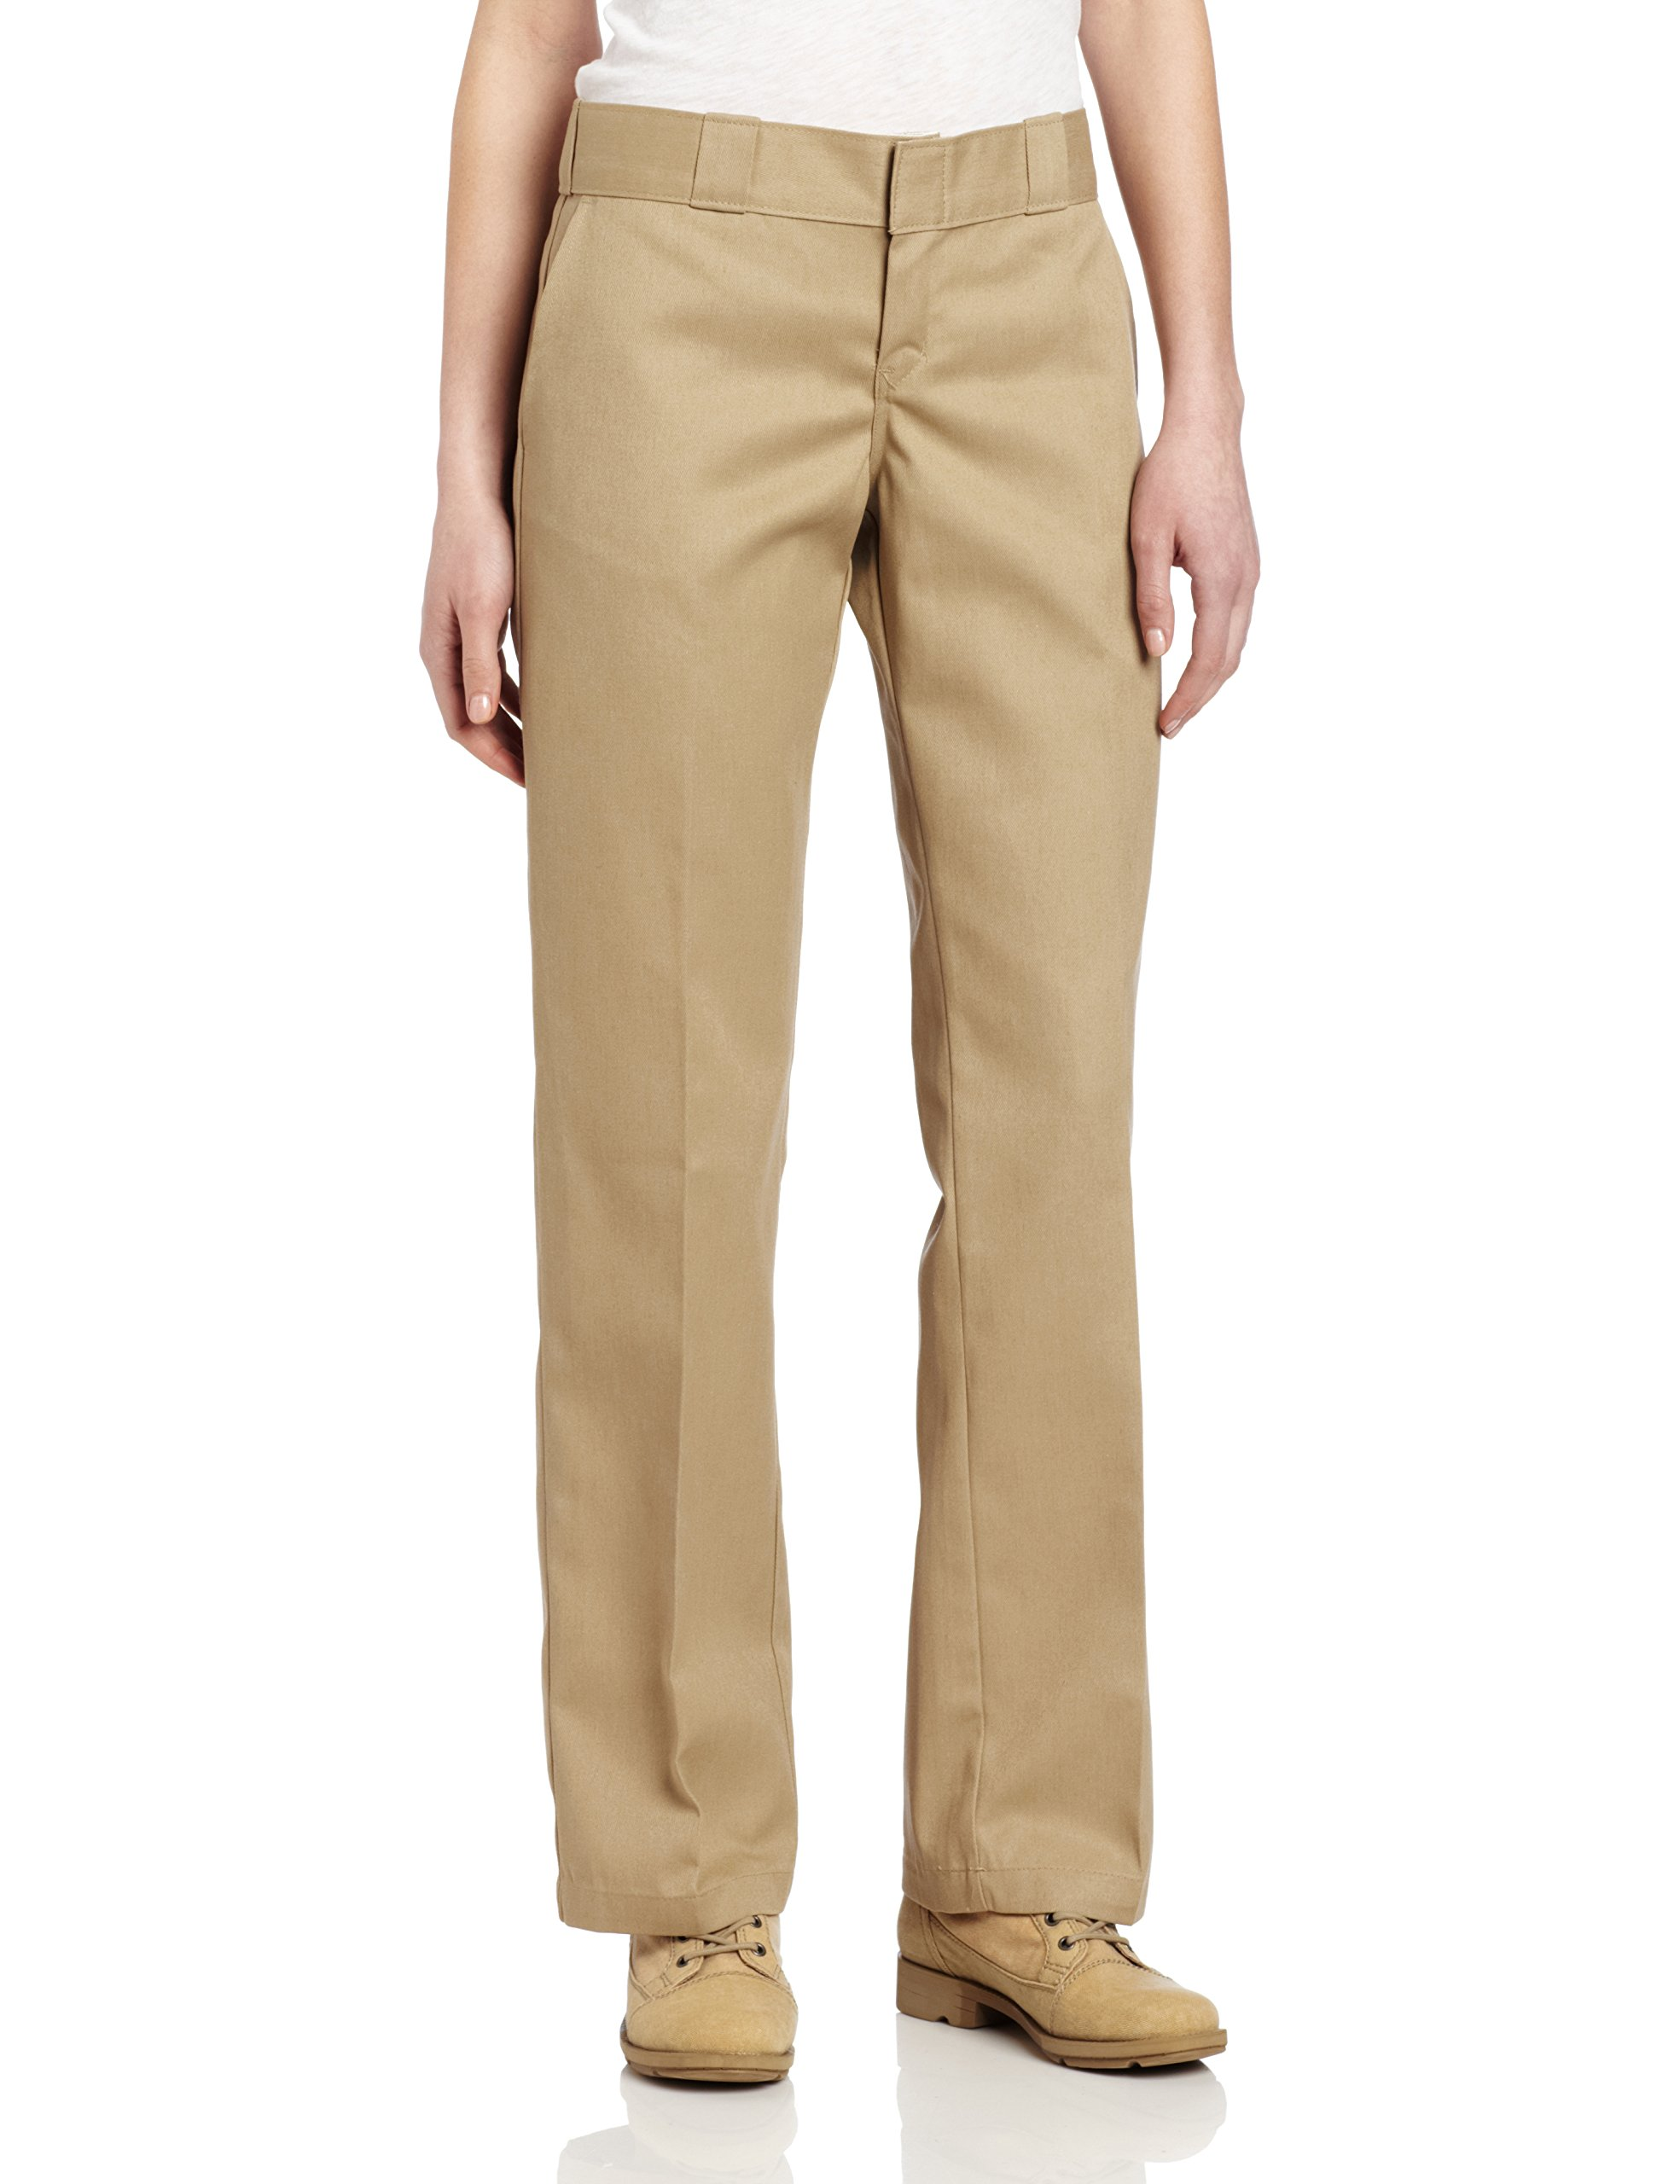 Dickies Women's Original Work Pant with Wrinkle And Stain Resistance,Khaki,16 Regular